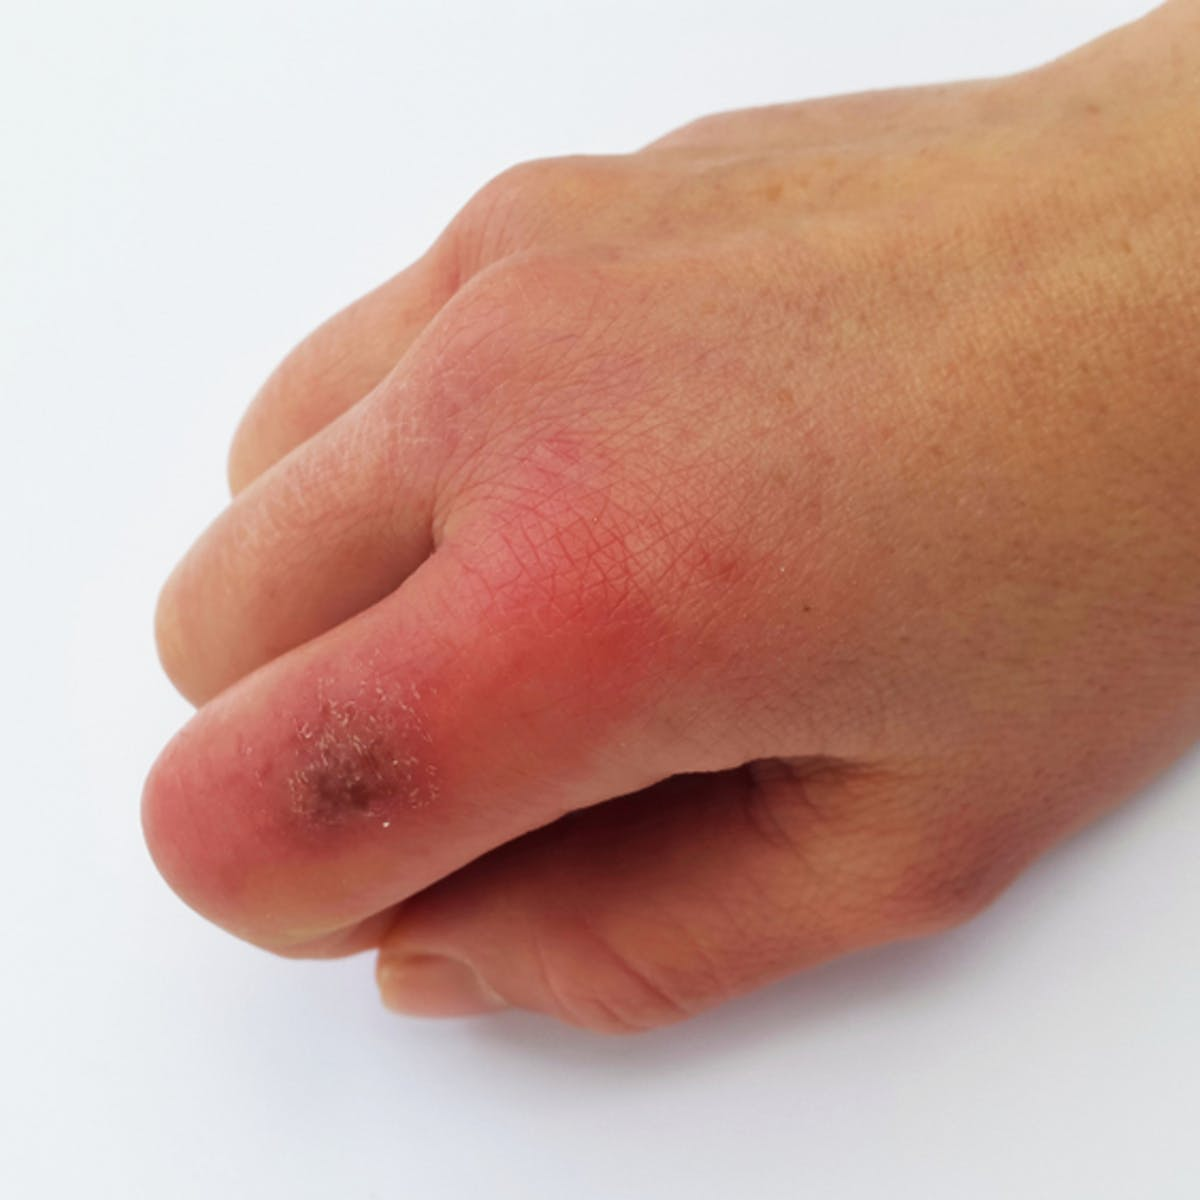 Health Check: what causes chilblains and how can I prevent them?